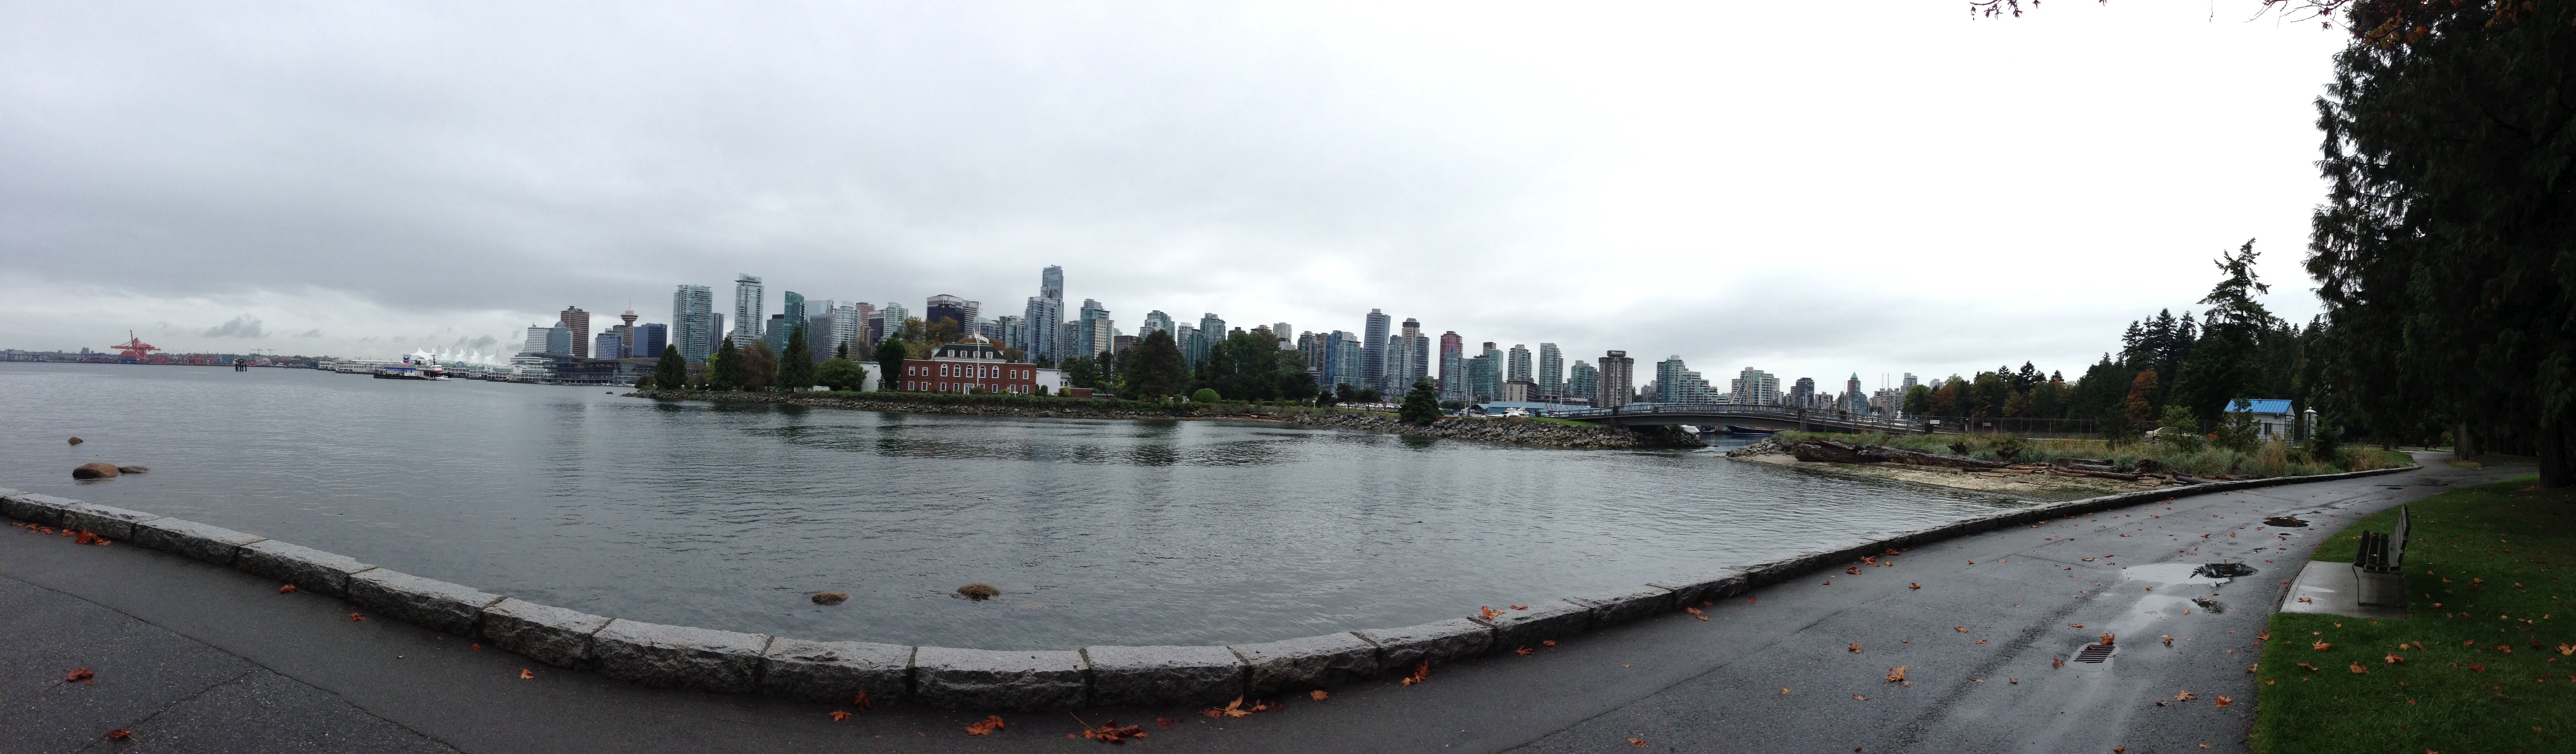 Soggy day in Vancouver BC